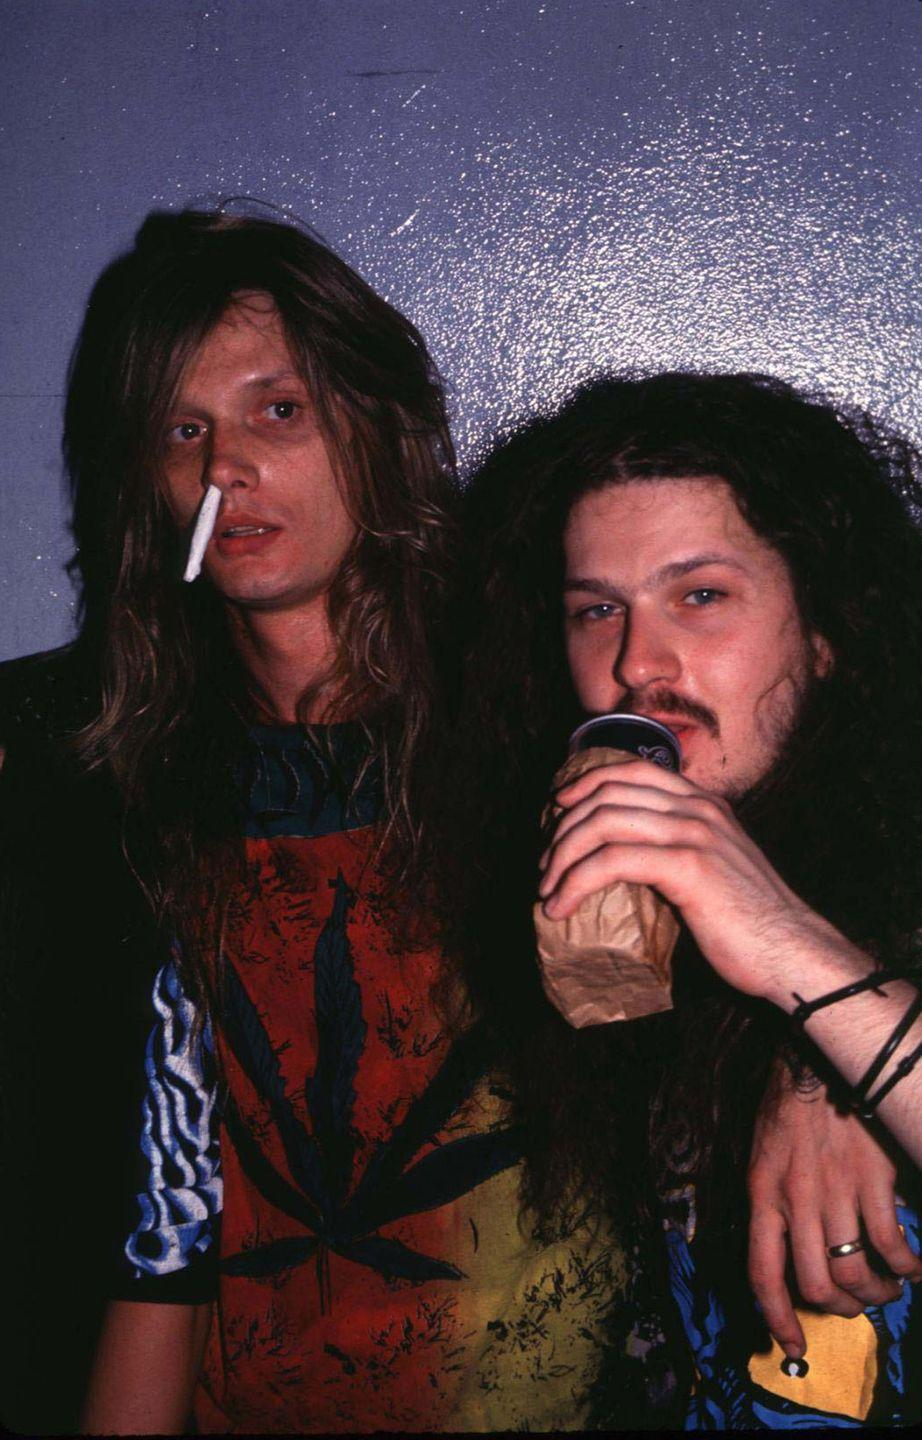 <p>Sebastian Bach of Skid Row with Dimebag Darrel of Pantera at the Limelight in NYC in 1993.</p>